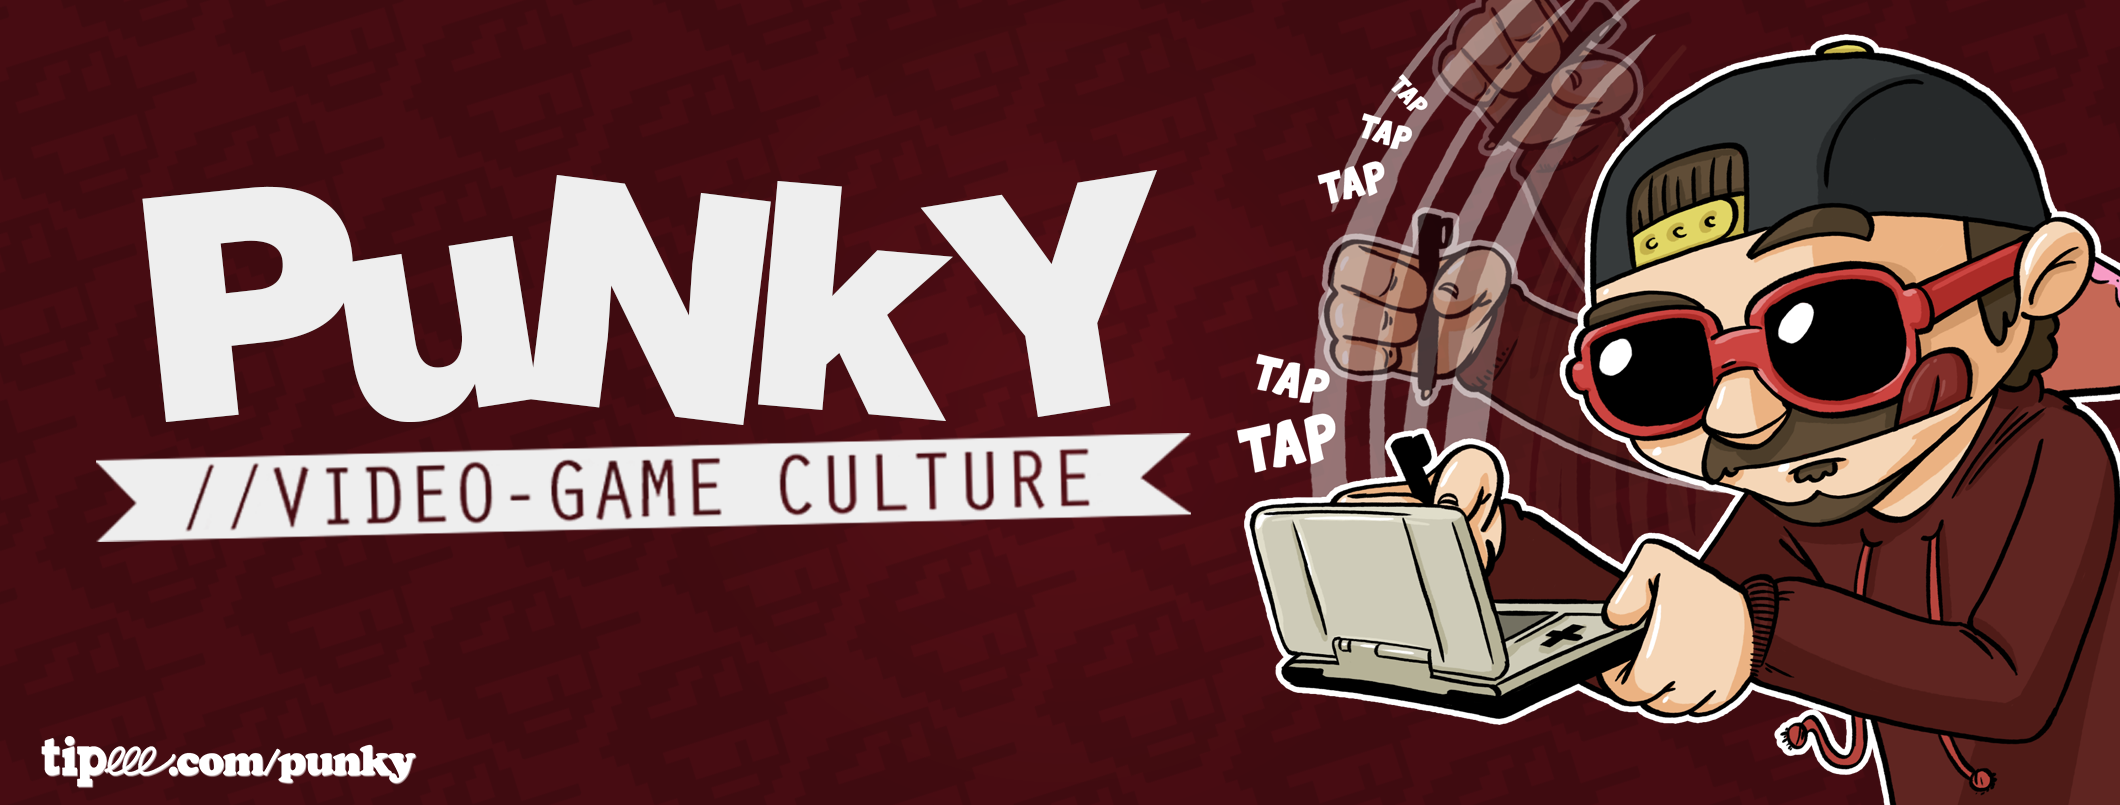 PuNkY - Video Game Culture